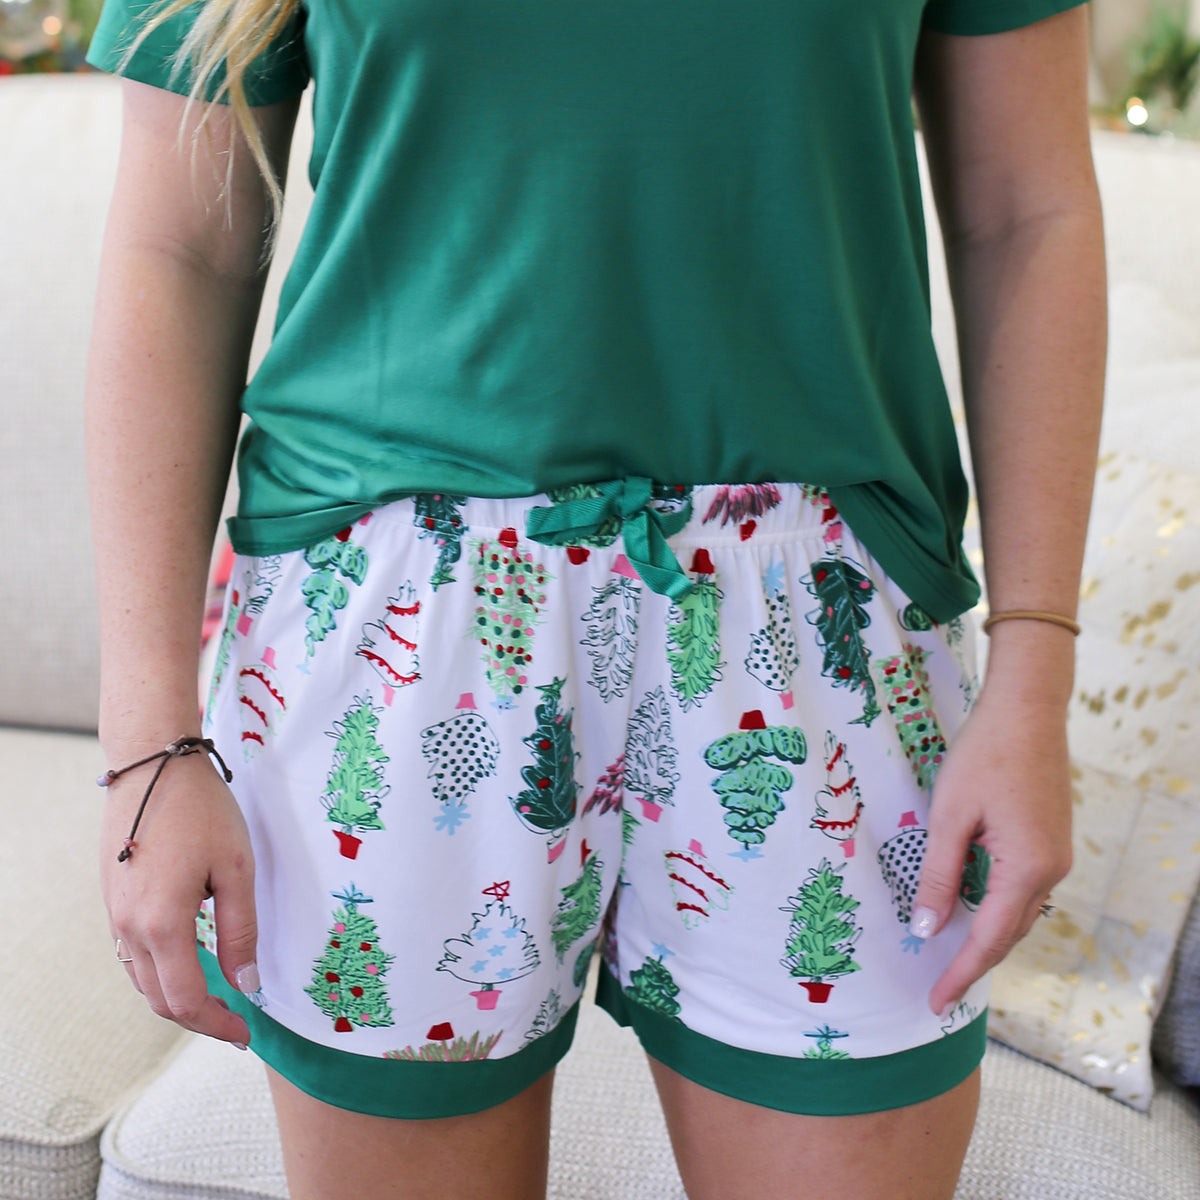 The perfect sleep shorts to get in the holiday spirit! These Treeful sleep shorts are perfect for watching holiday movies, opening gifts on Christmas morning and so much more!  Material: 95% Polyester, 5% Spandex Runs true to size, model is wearing a size